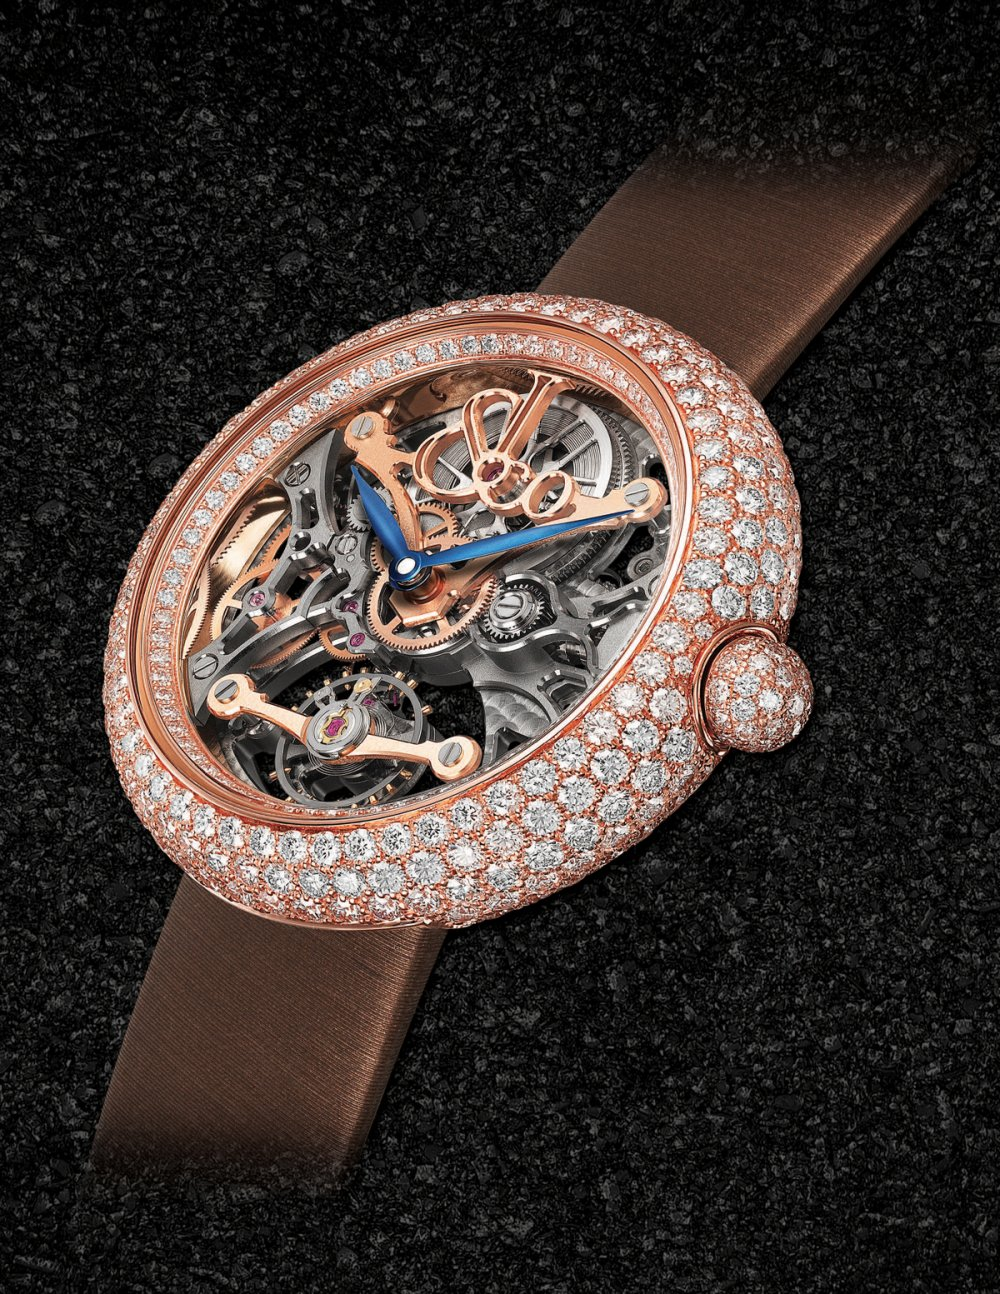 Brilliant and classic:jacobandco diamonds watch